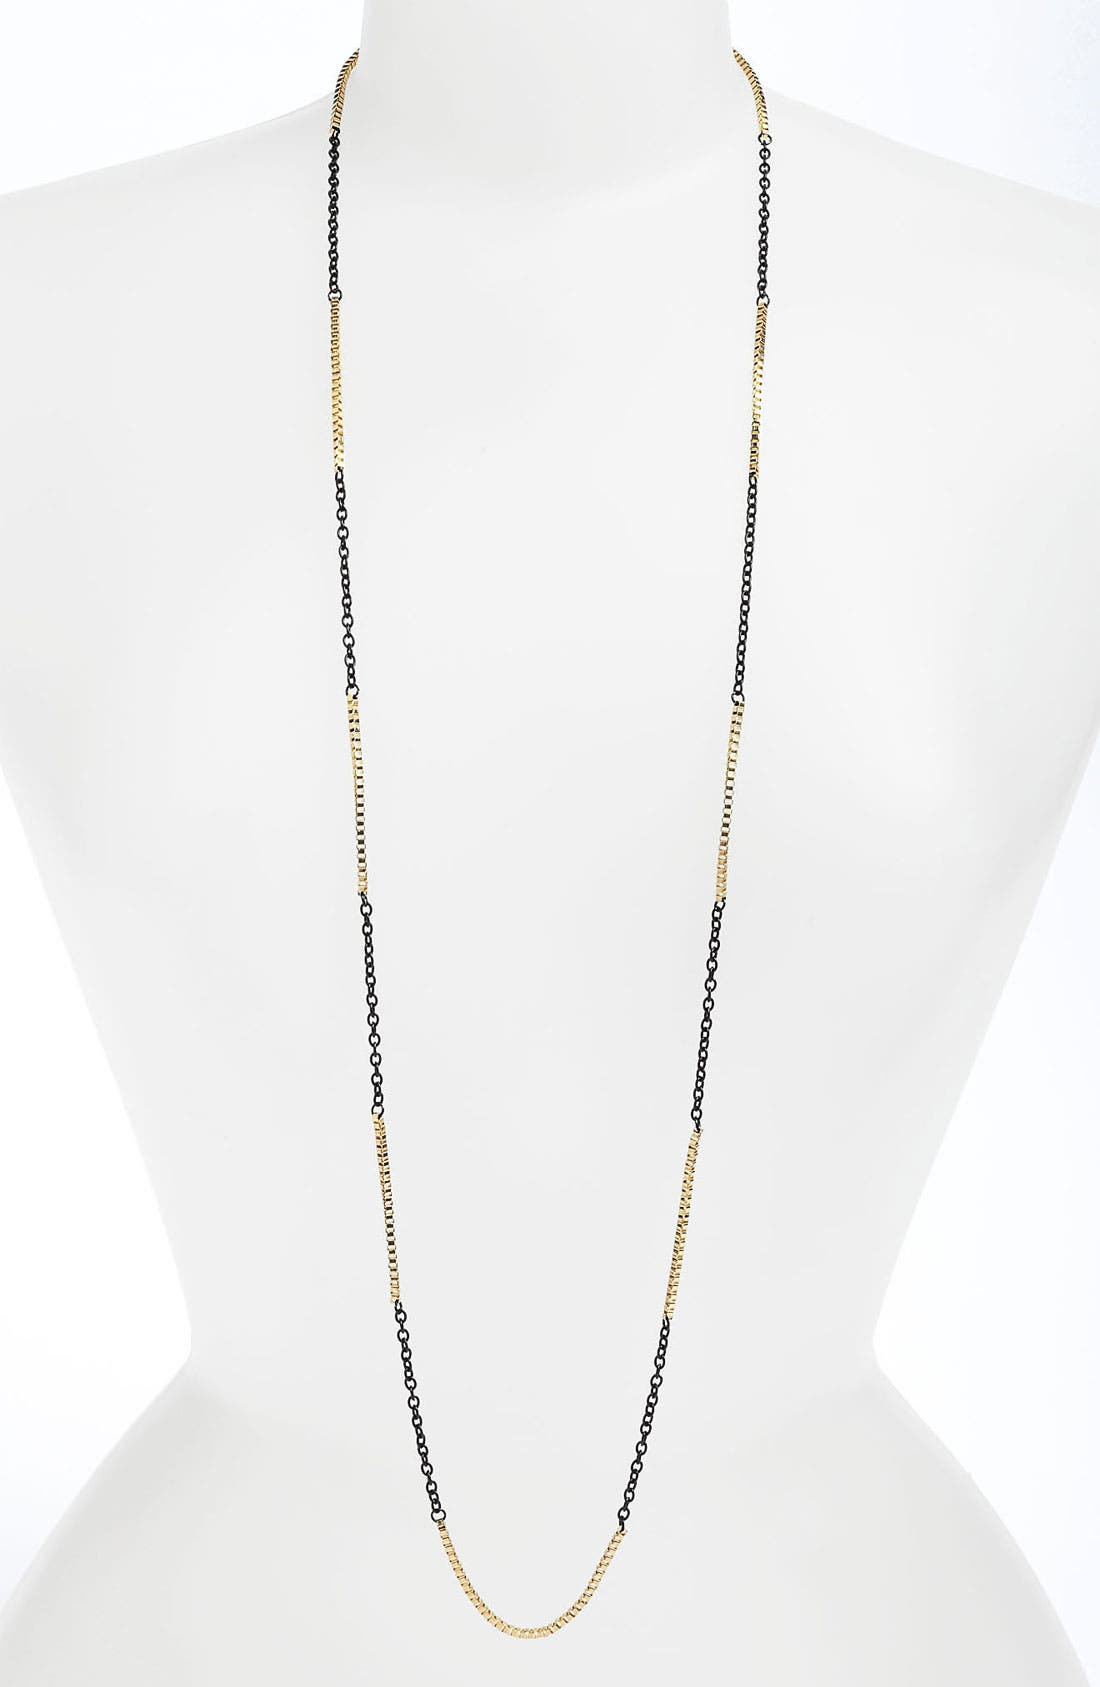 Stephan & Co Mixed Chain Necklace,                         Main,                         color, Black And Shiny Gold